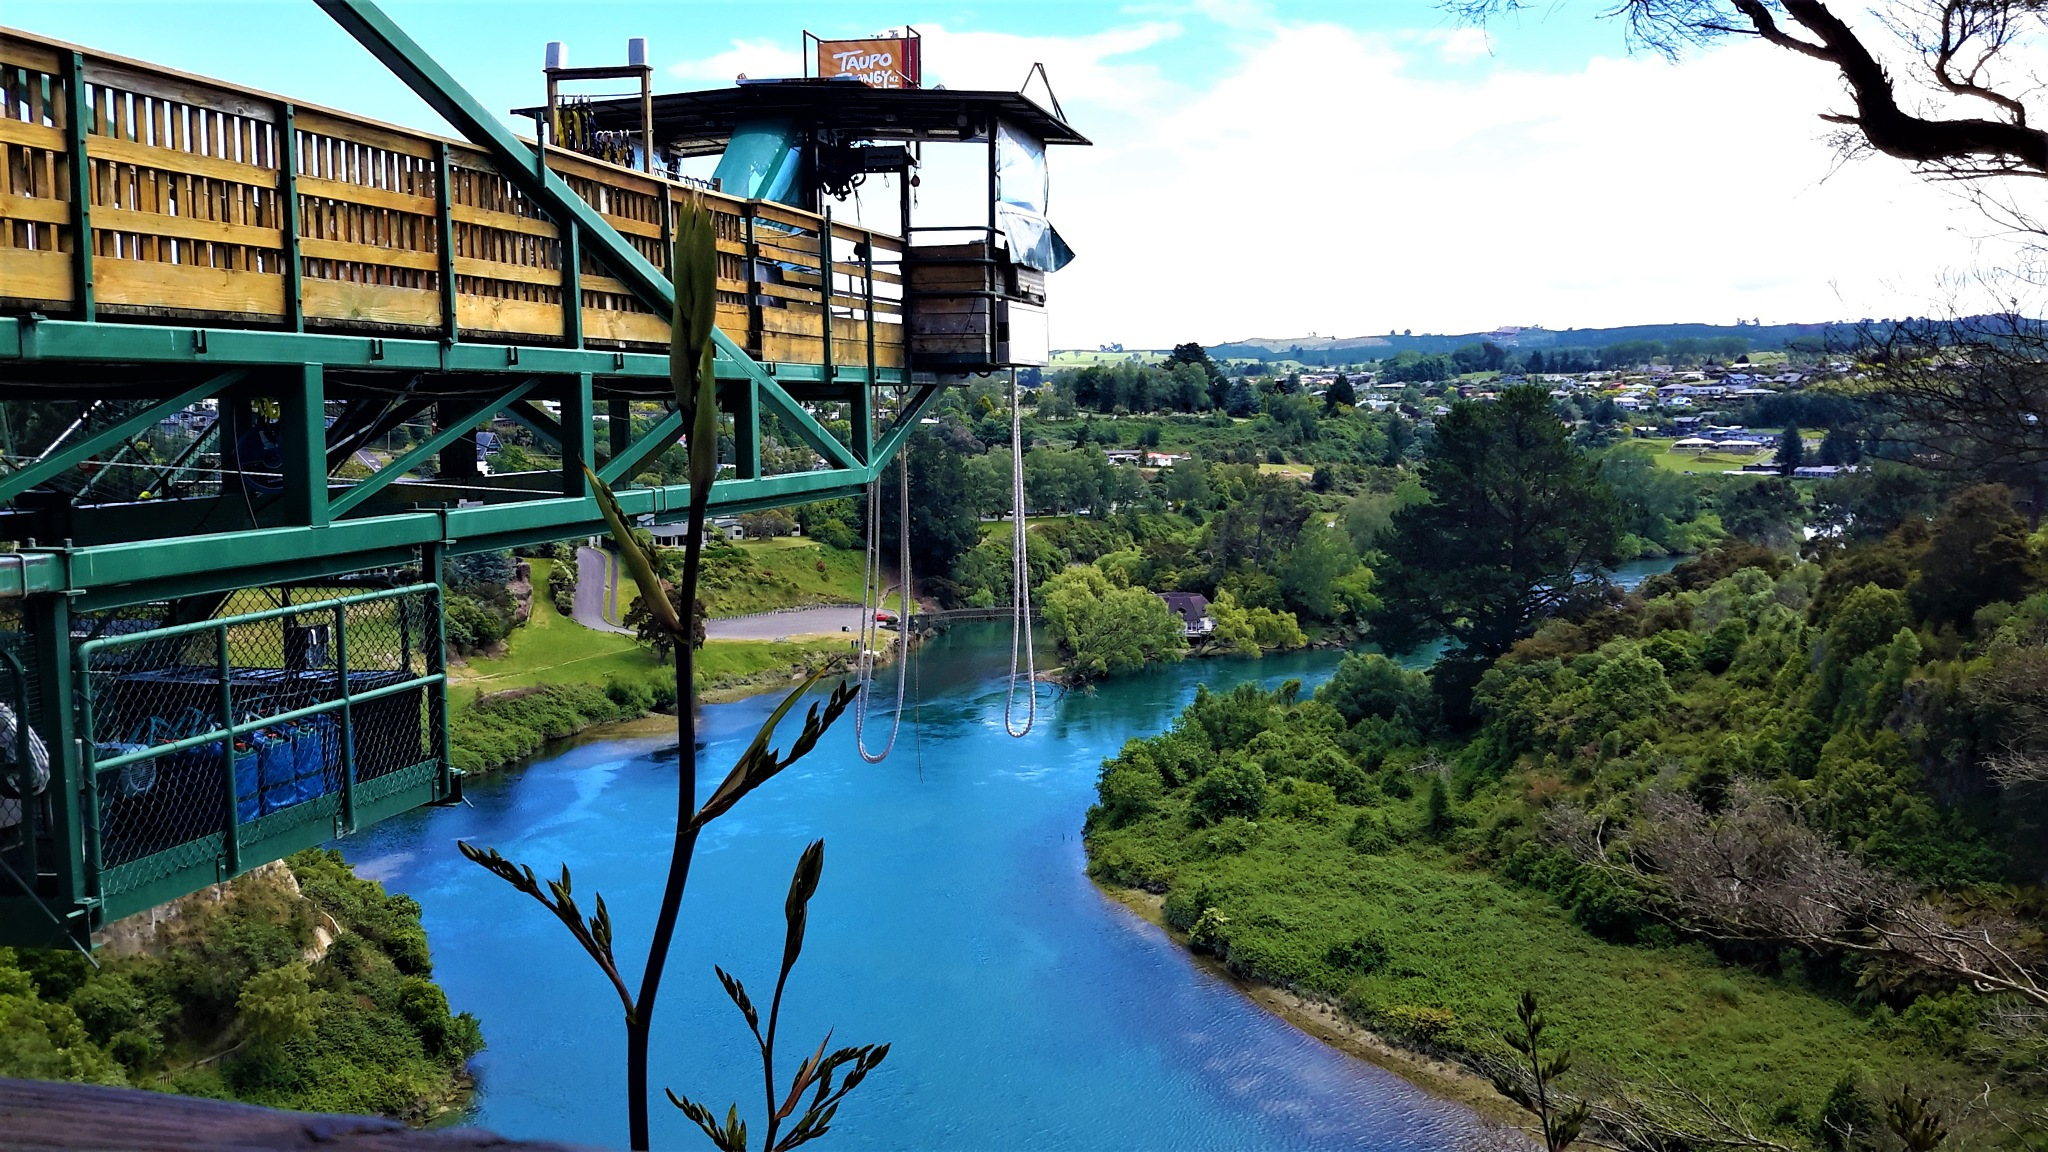 Bungee Jumping river by Laura Gipsy